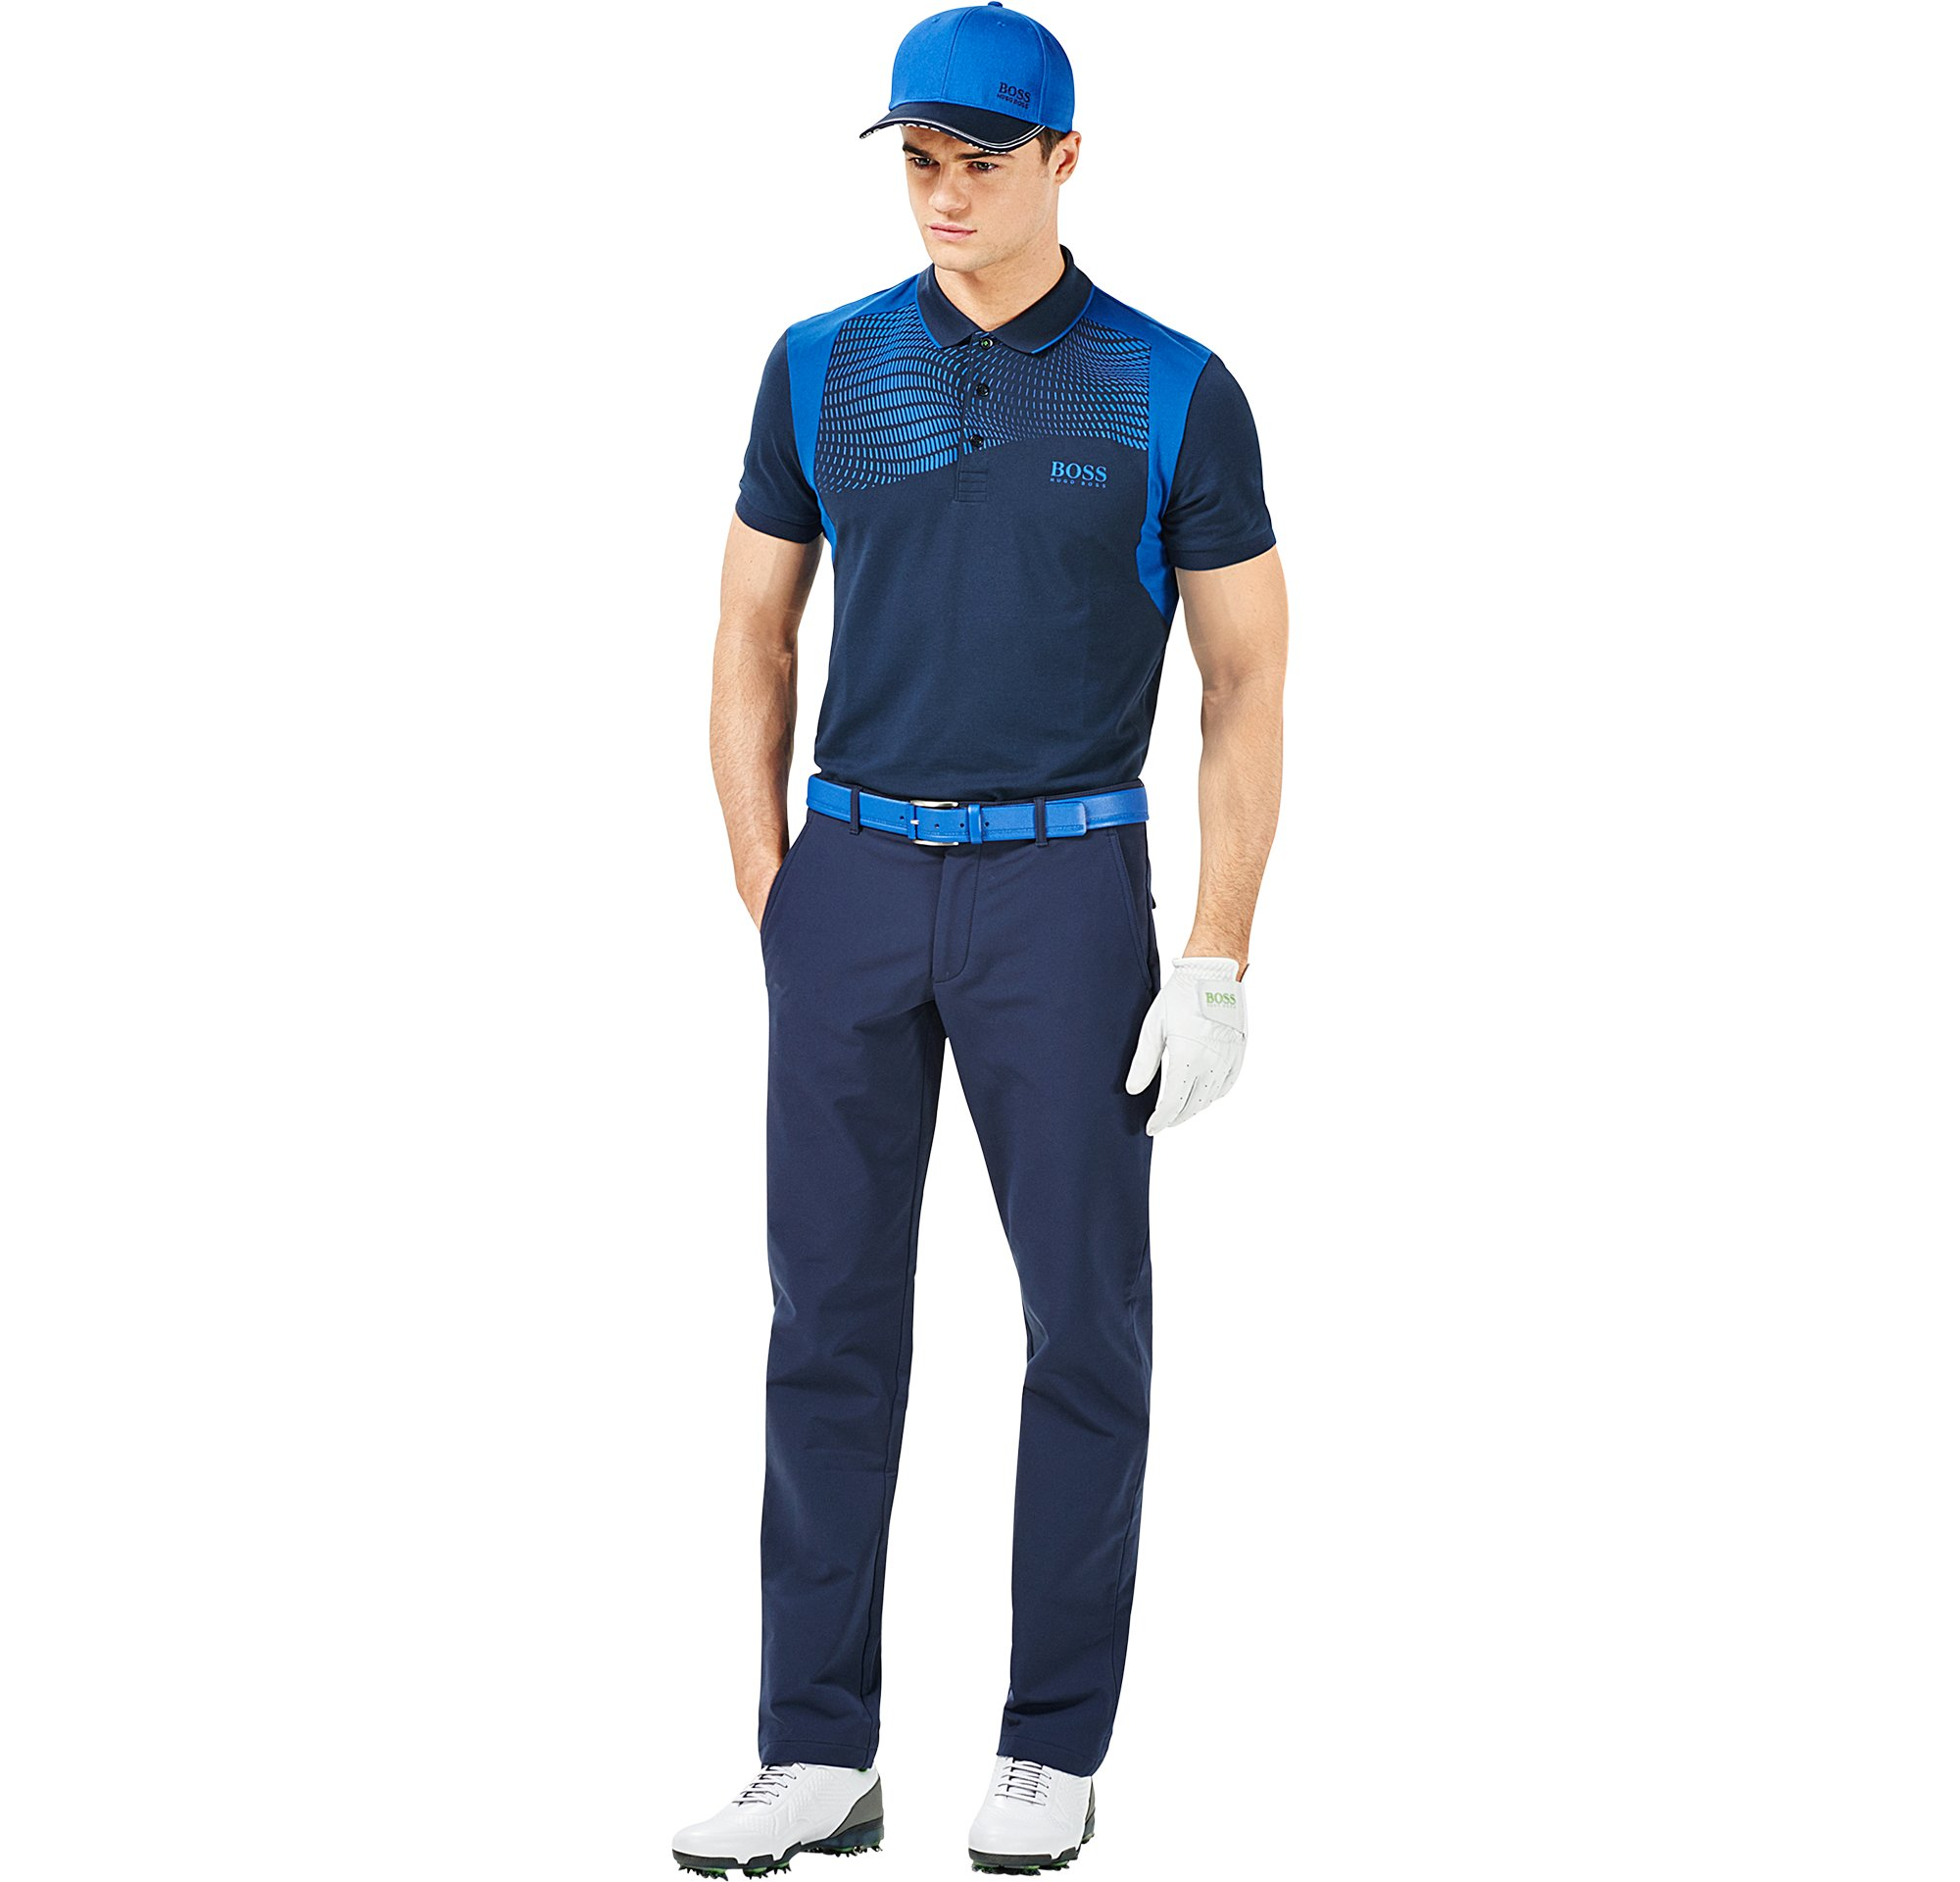 Polo, trousers, gloves, cap and shoes by BOSS Green Menswear